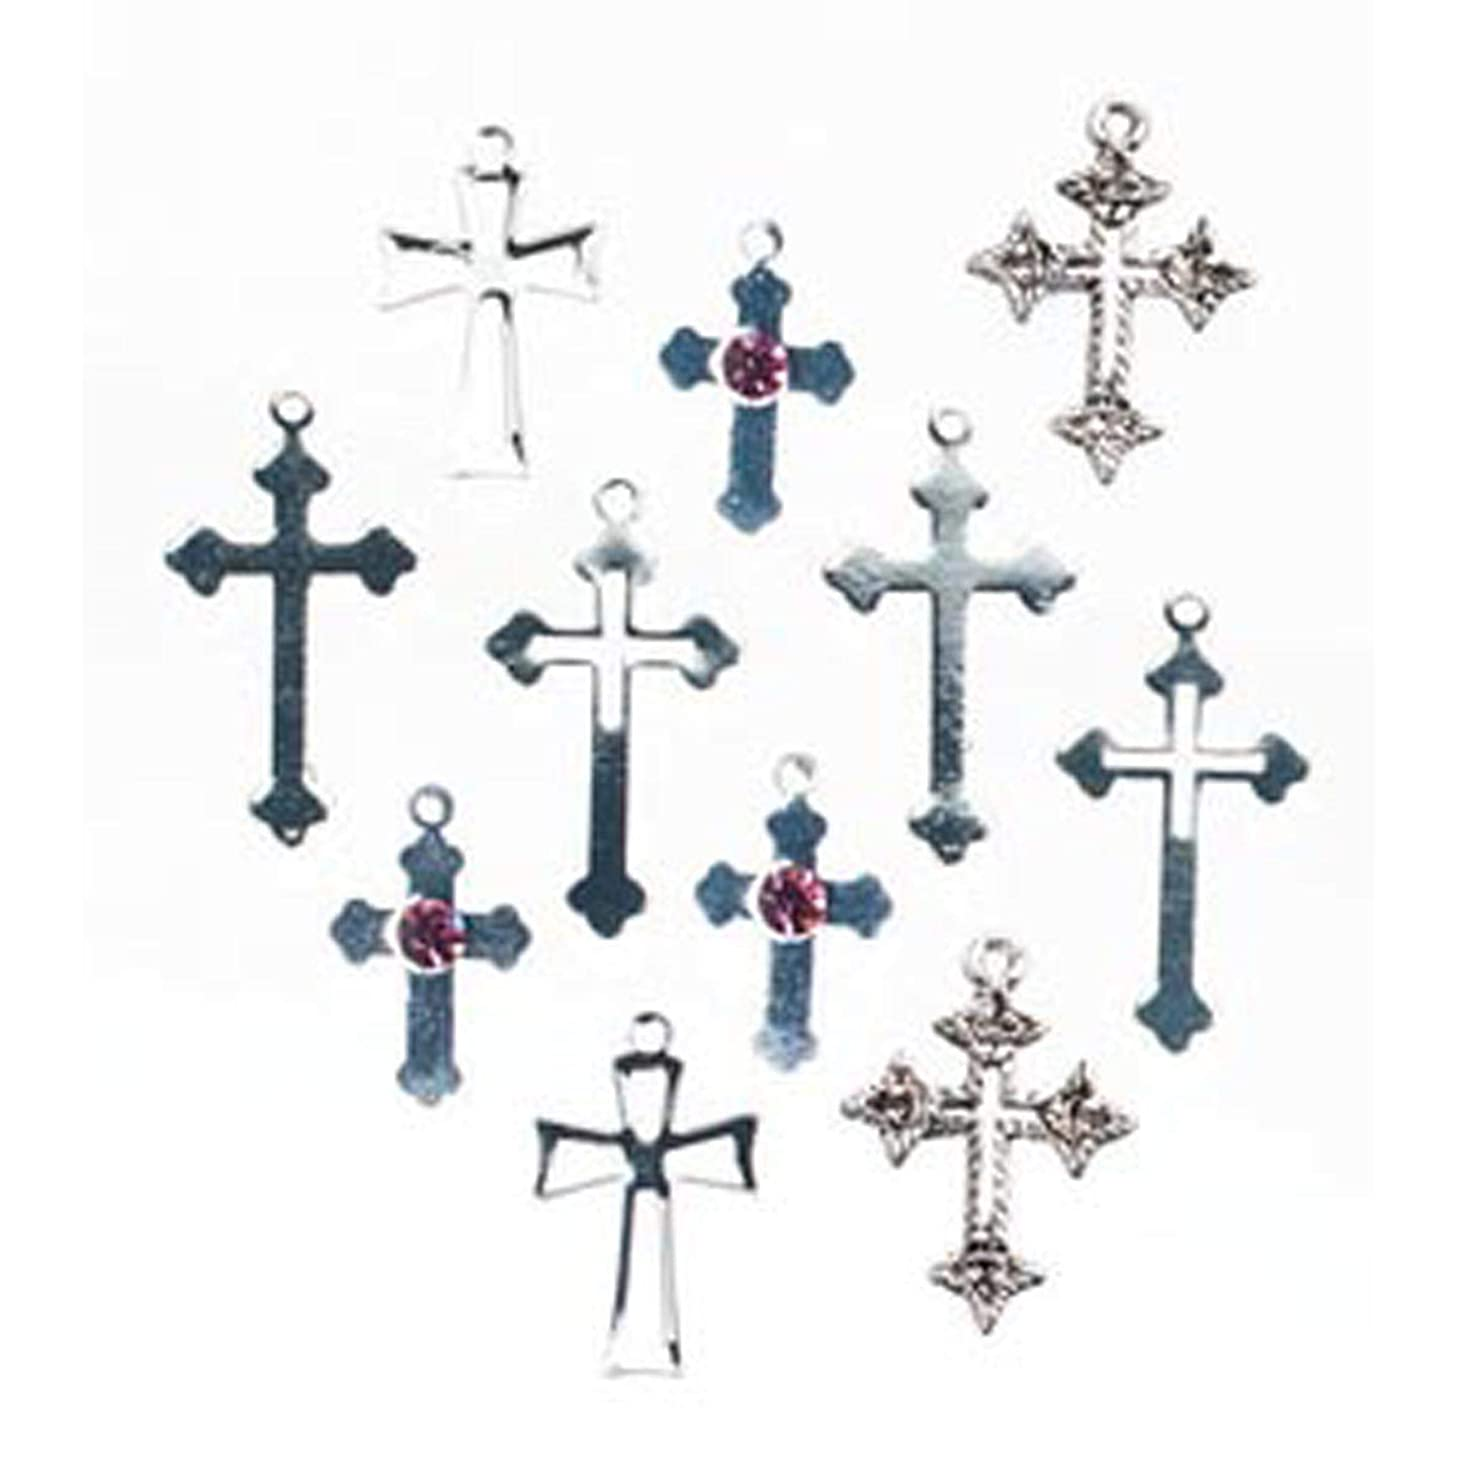 Bulk Buy: Darice DIY Crafts Cross Charms Silver Assorted Shapes and Sizes 12 pieces (3-Pack) 1970-58